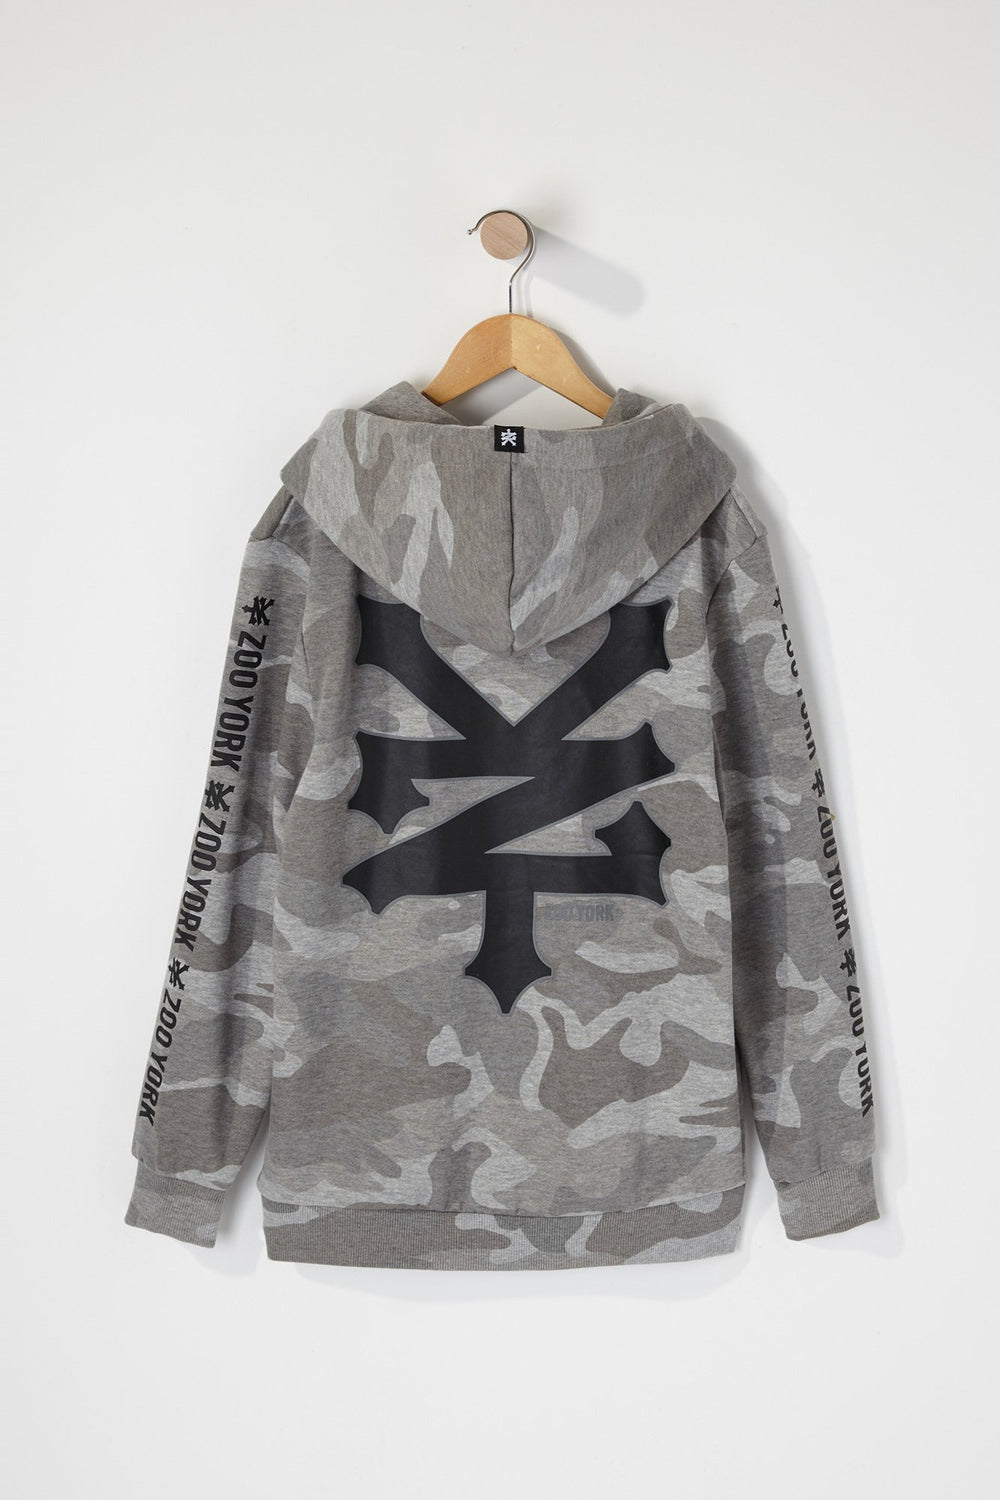 Zoo York Boys Camo Box Logo Hoodie Gingham